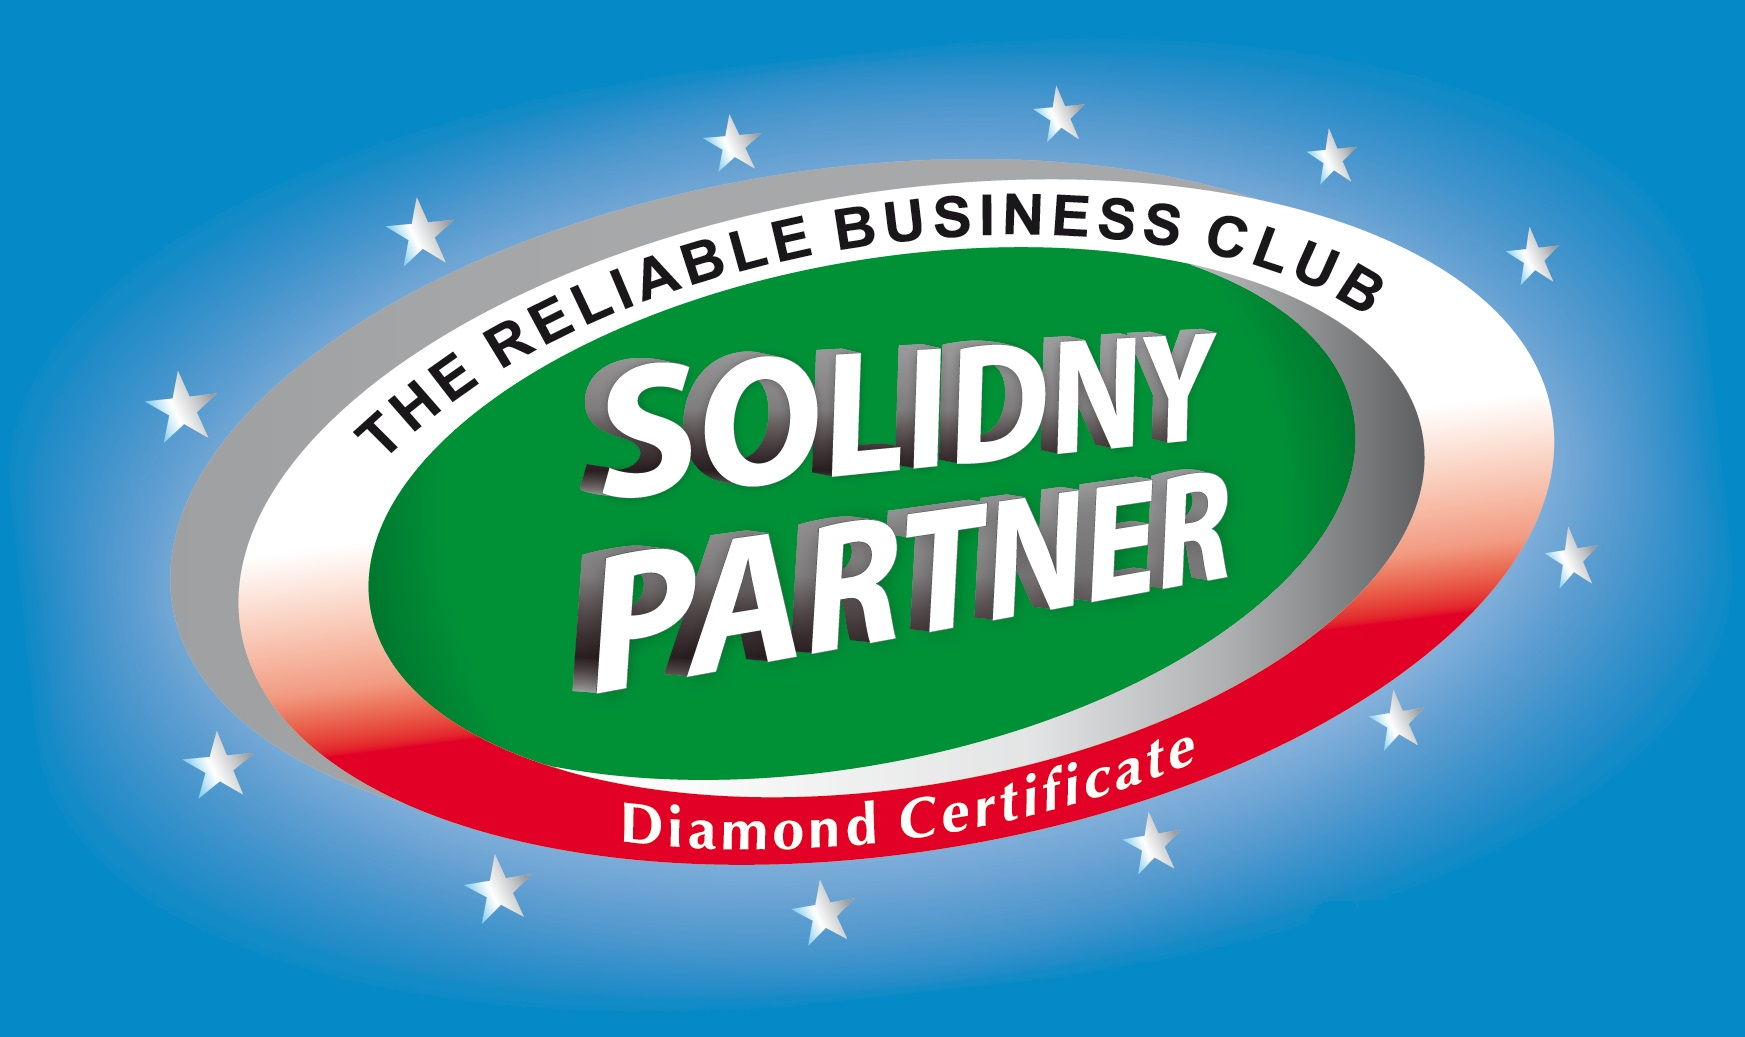 Diamond Certificate | Solidny Partner